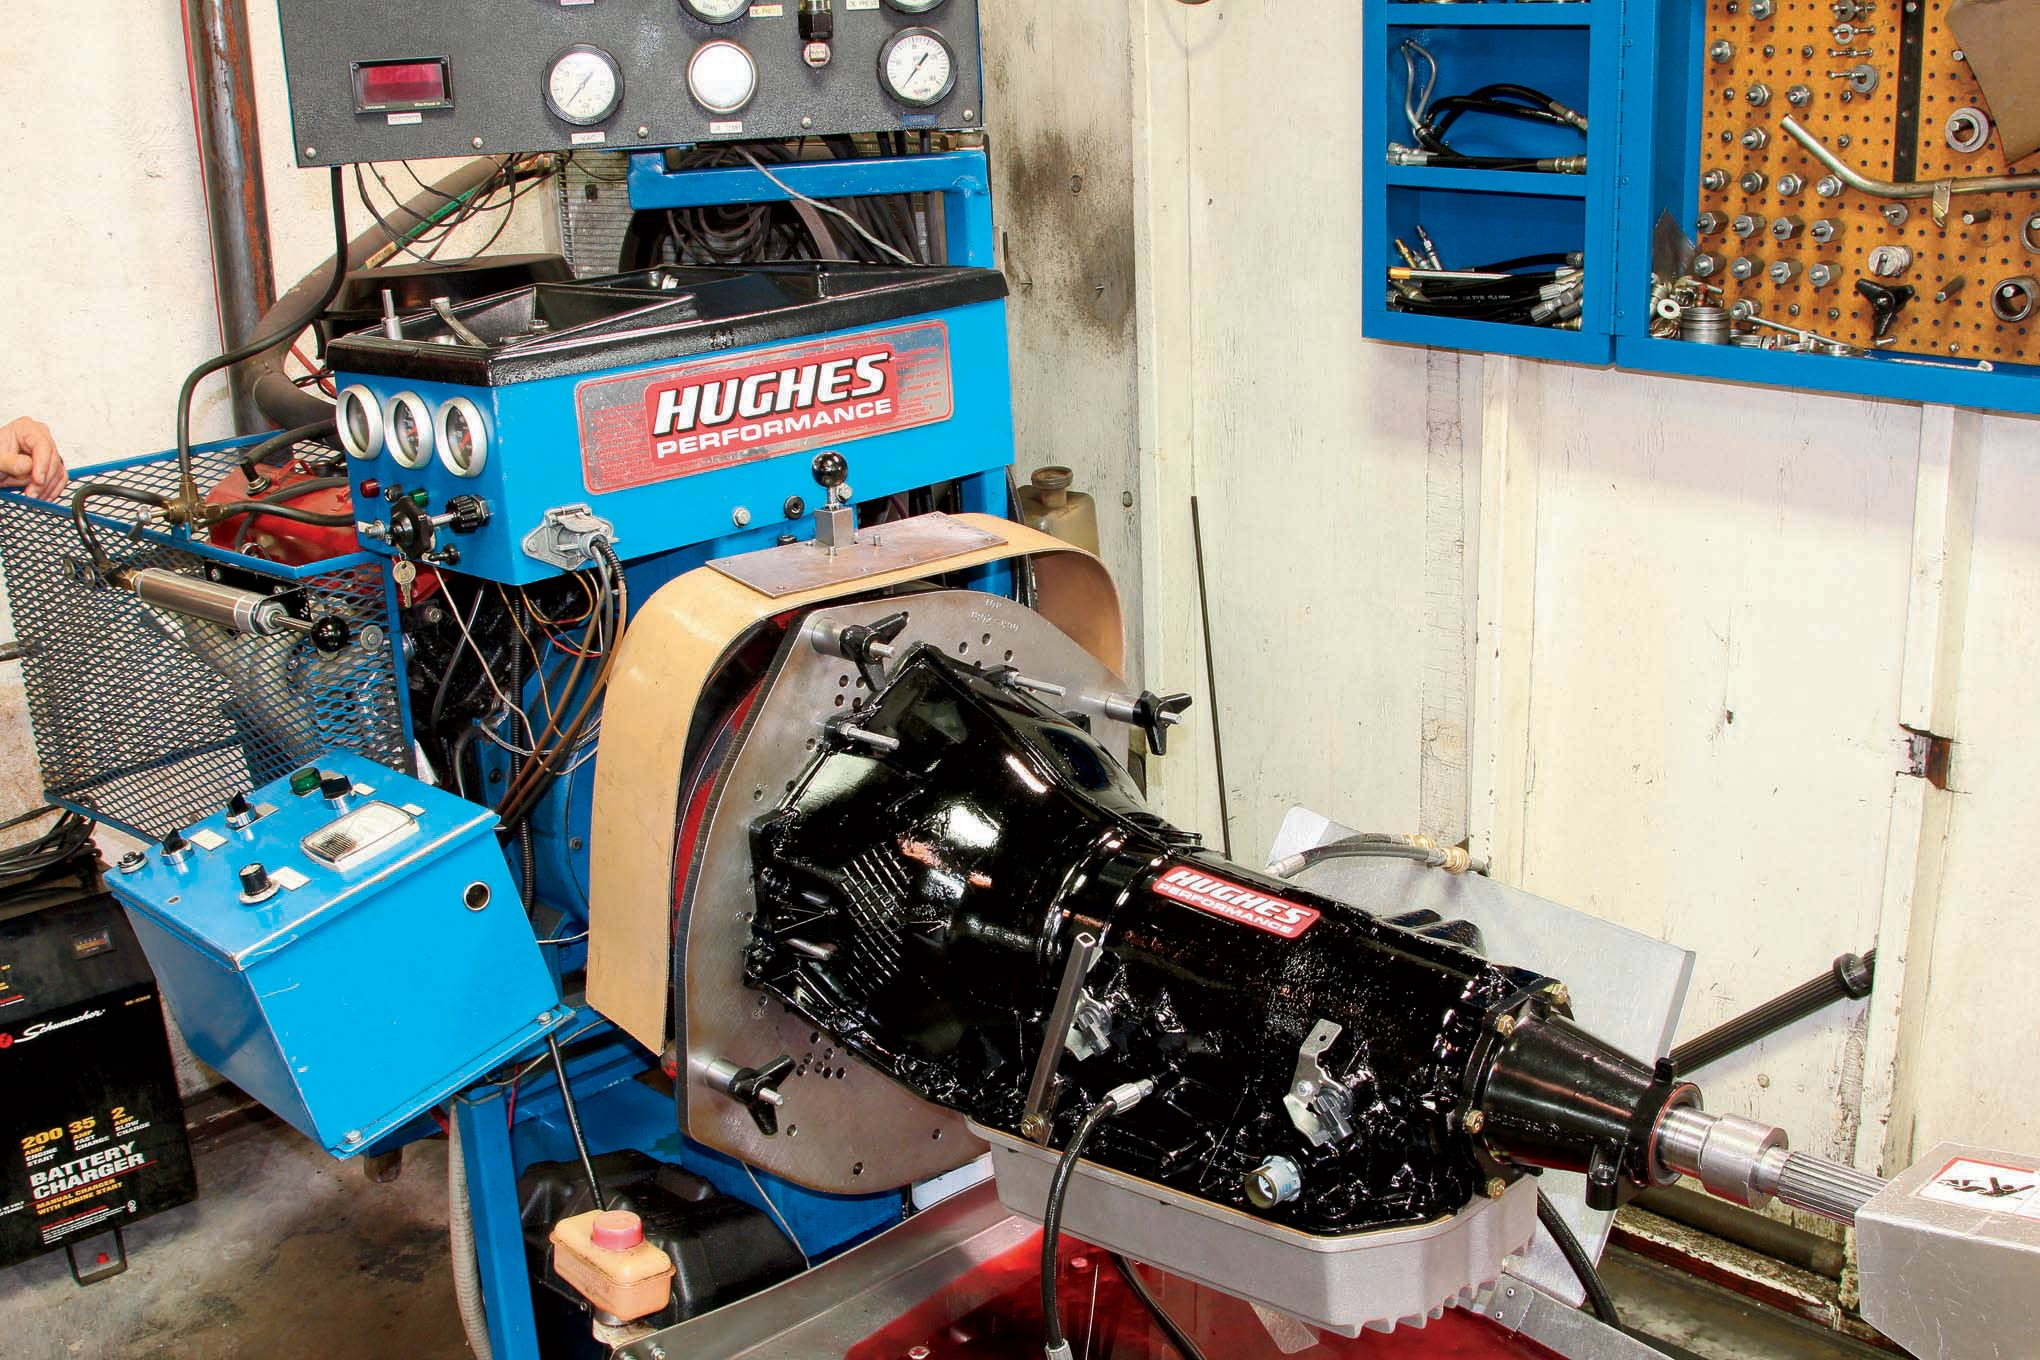 Each Hughes transmission is completely dyno tested to verify line pressure, shift function, and cooler flow before it goes out the door.